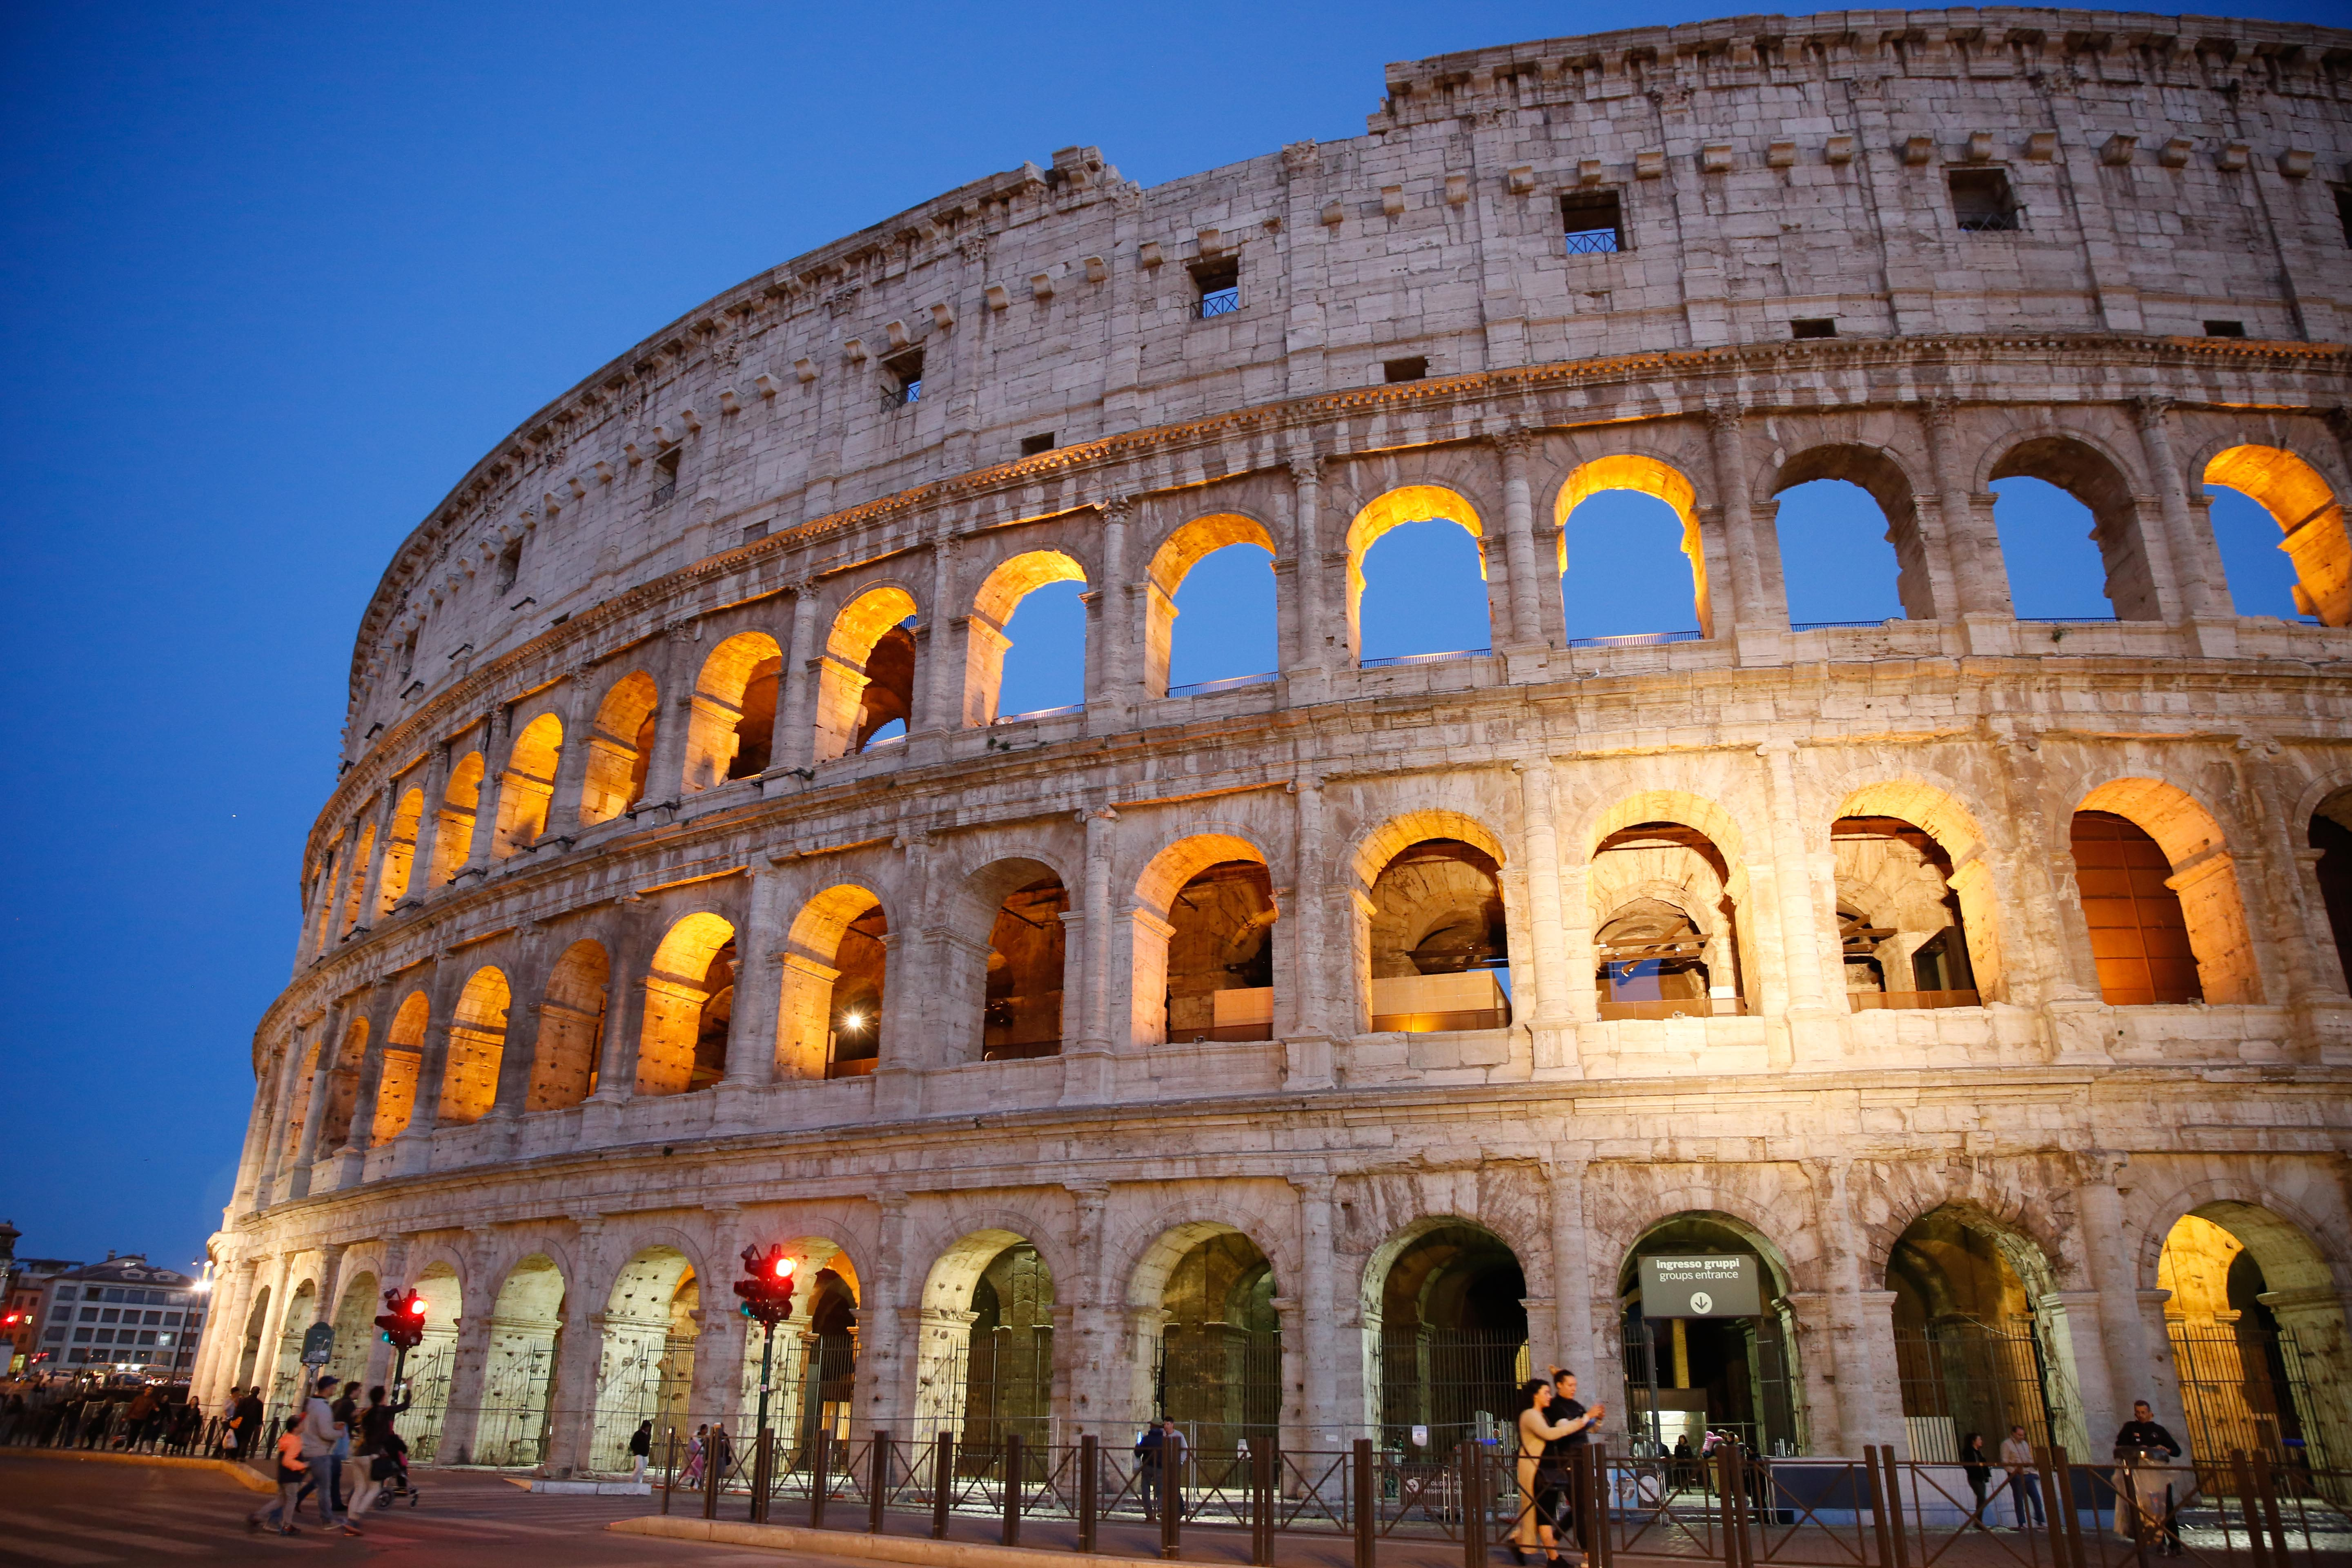 colosseum, rome, italy, rome travel diary